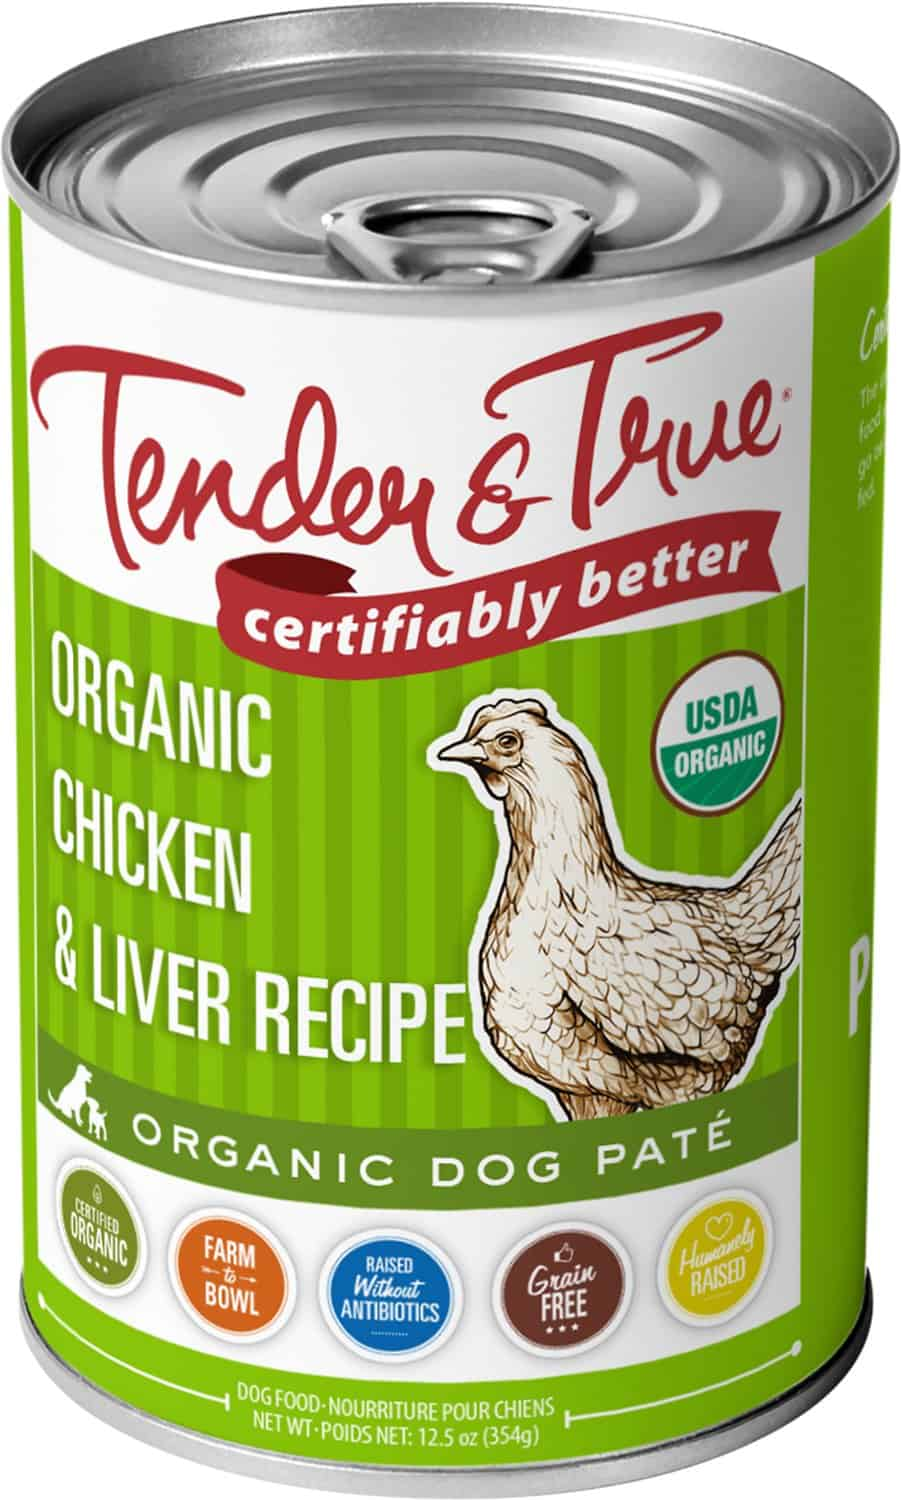 Tender and True Dog Food Review, Recalls & Coupons [year] 15